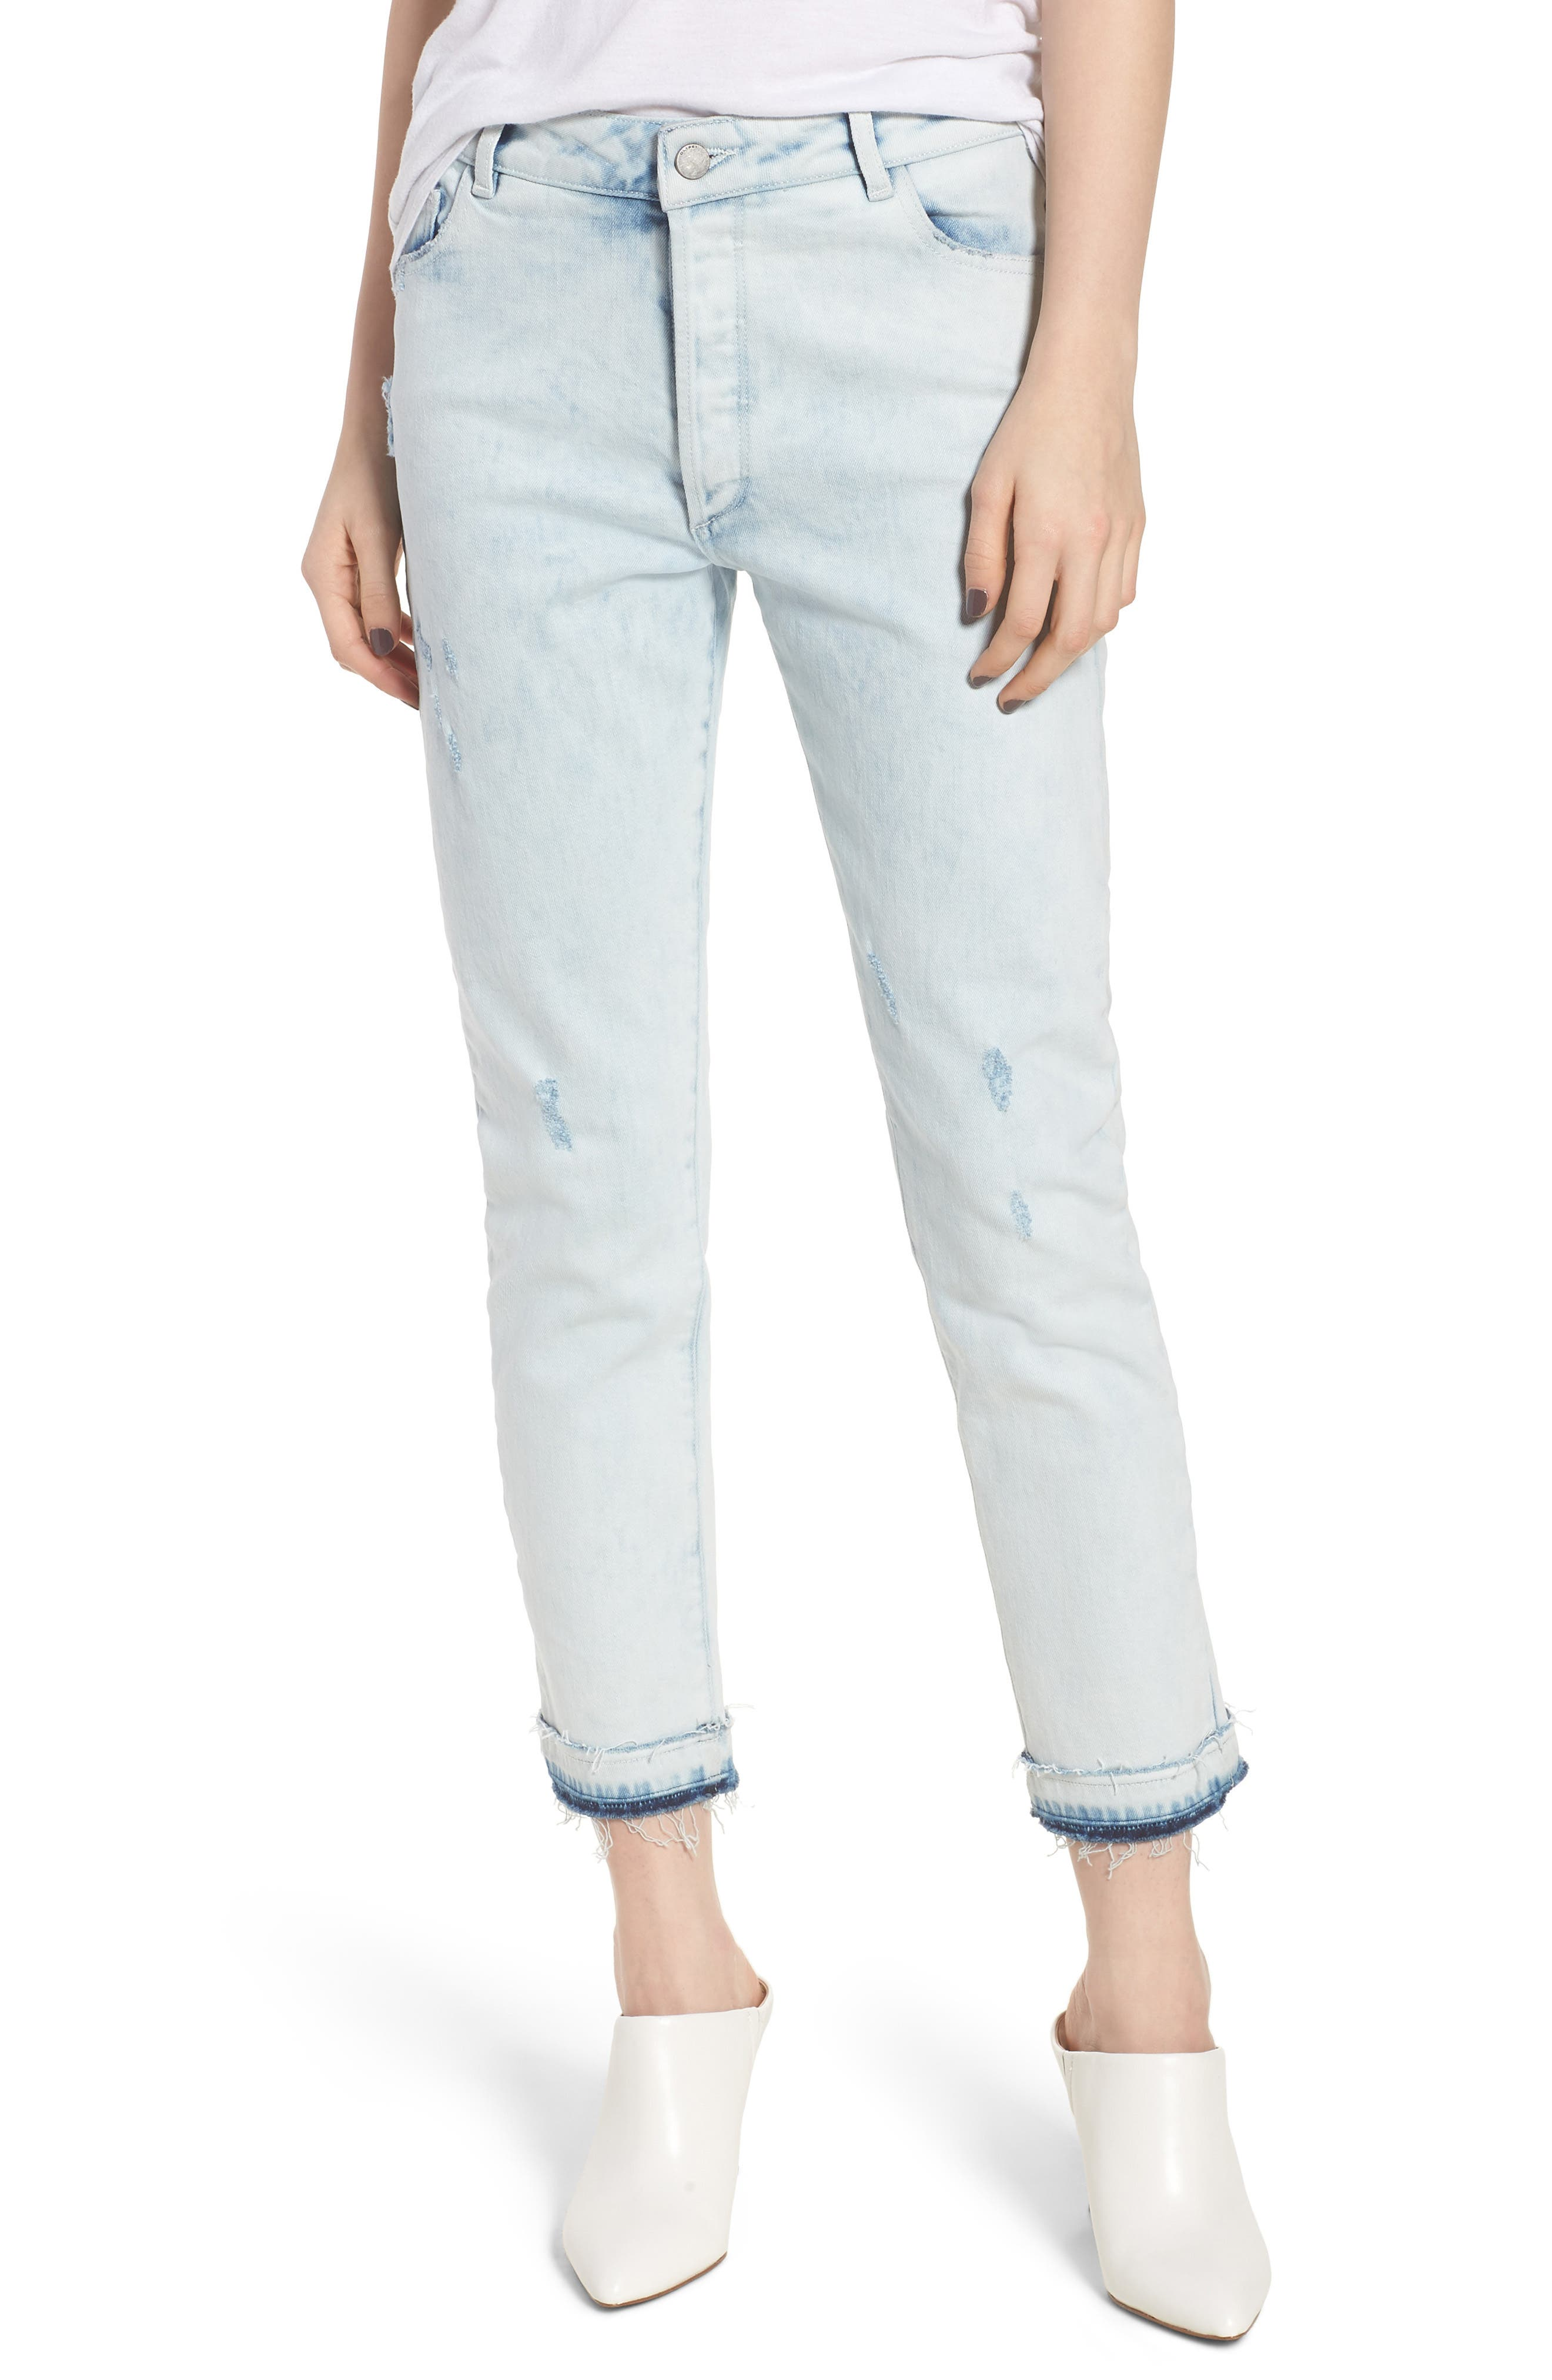 Bella Vintage Crop Slim Jeans,                             Main thumbnail 1, color,